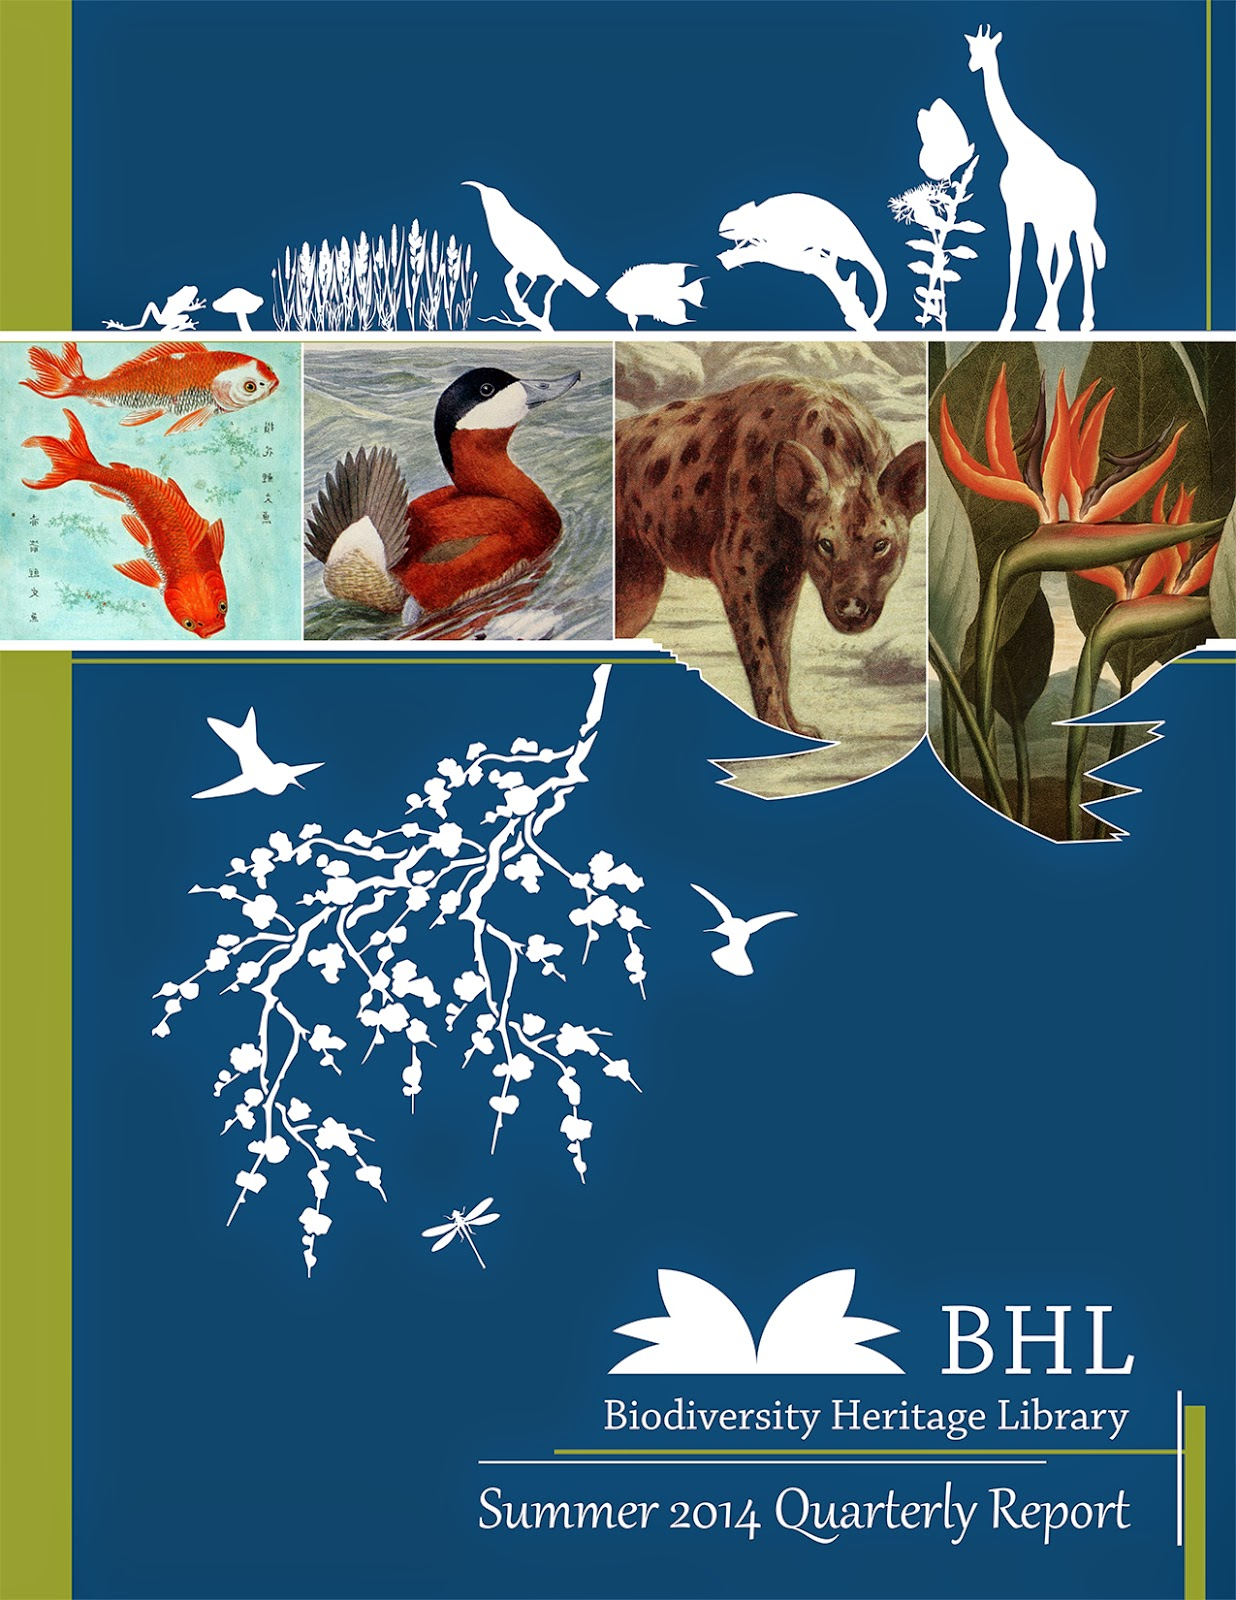 http://biodivlib.wikispaces.com/file/view/Q3%20FY14%20Quarterly%20Report.pdf/516885354/Q3%20FY14%20Quarterly%20Report.pdf